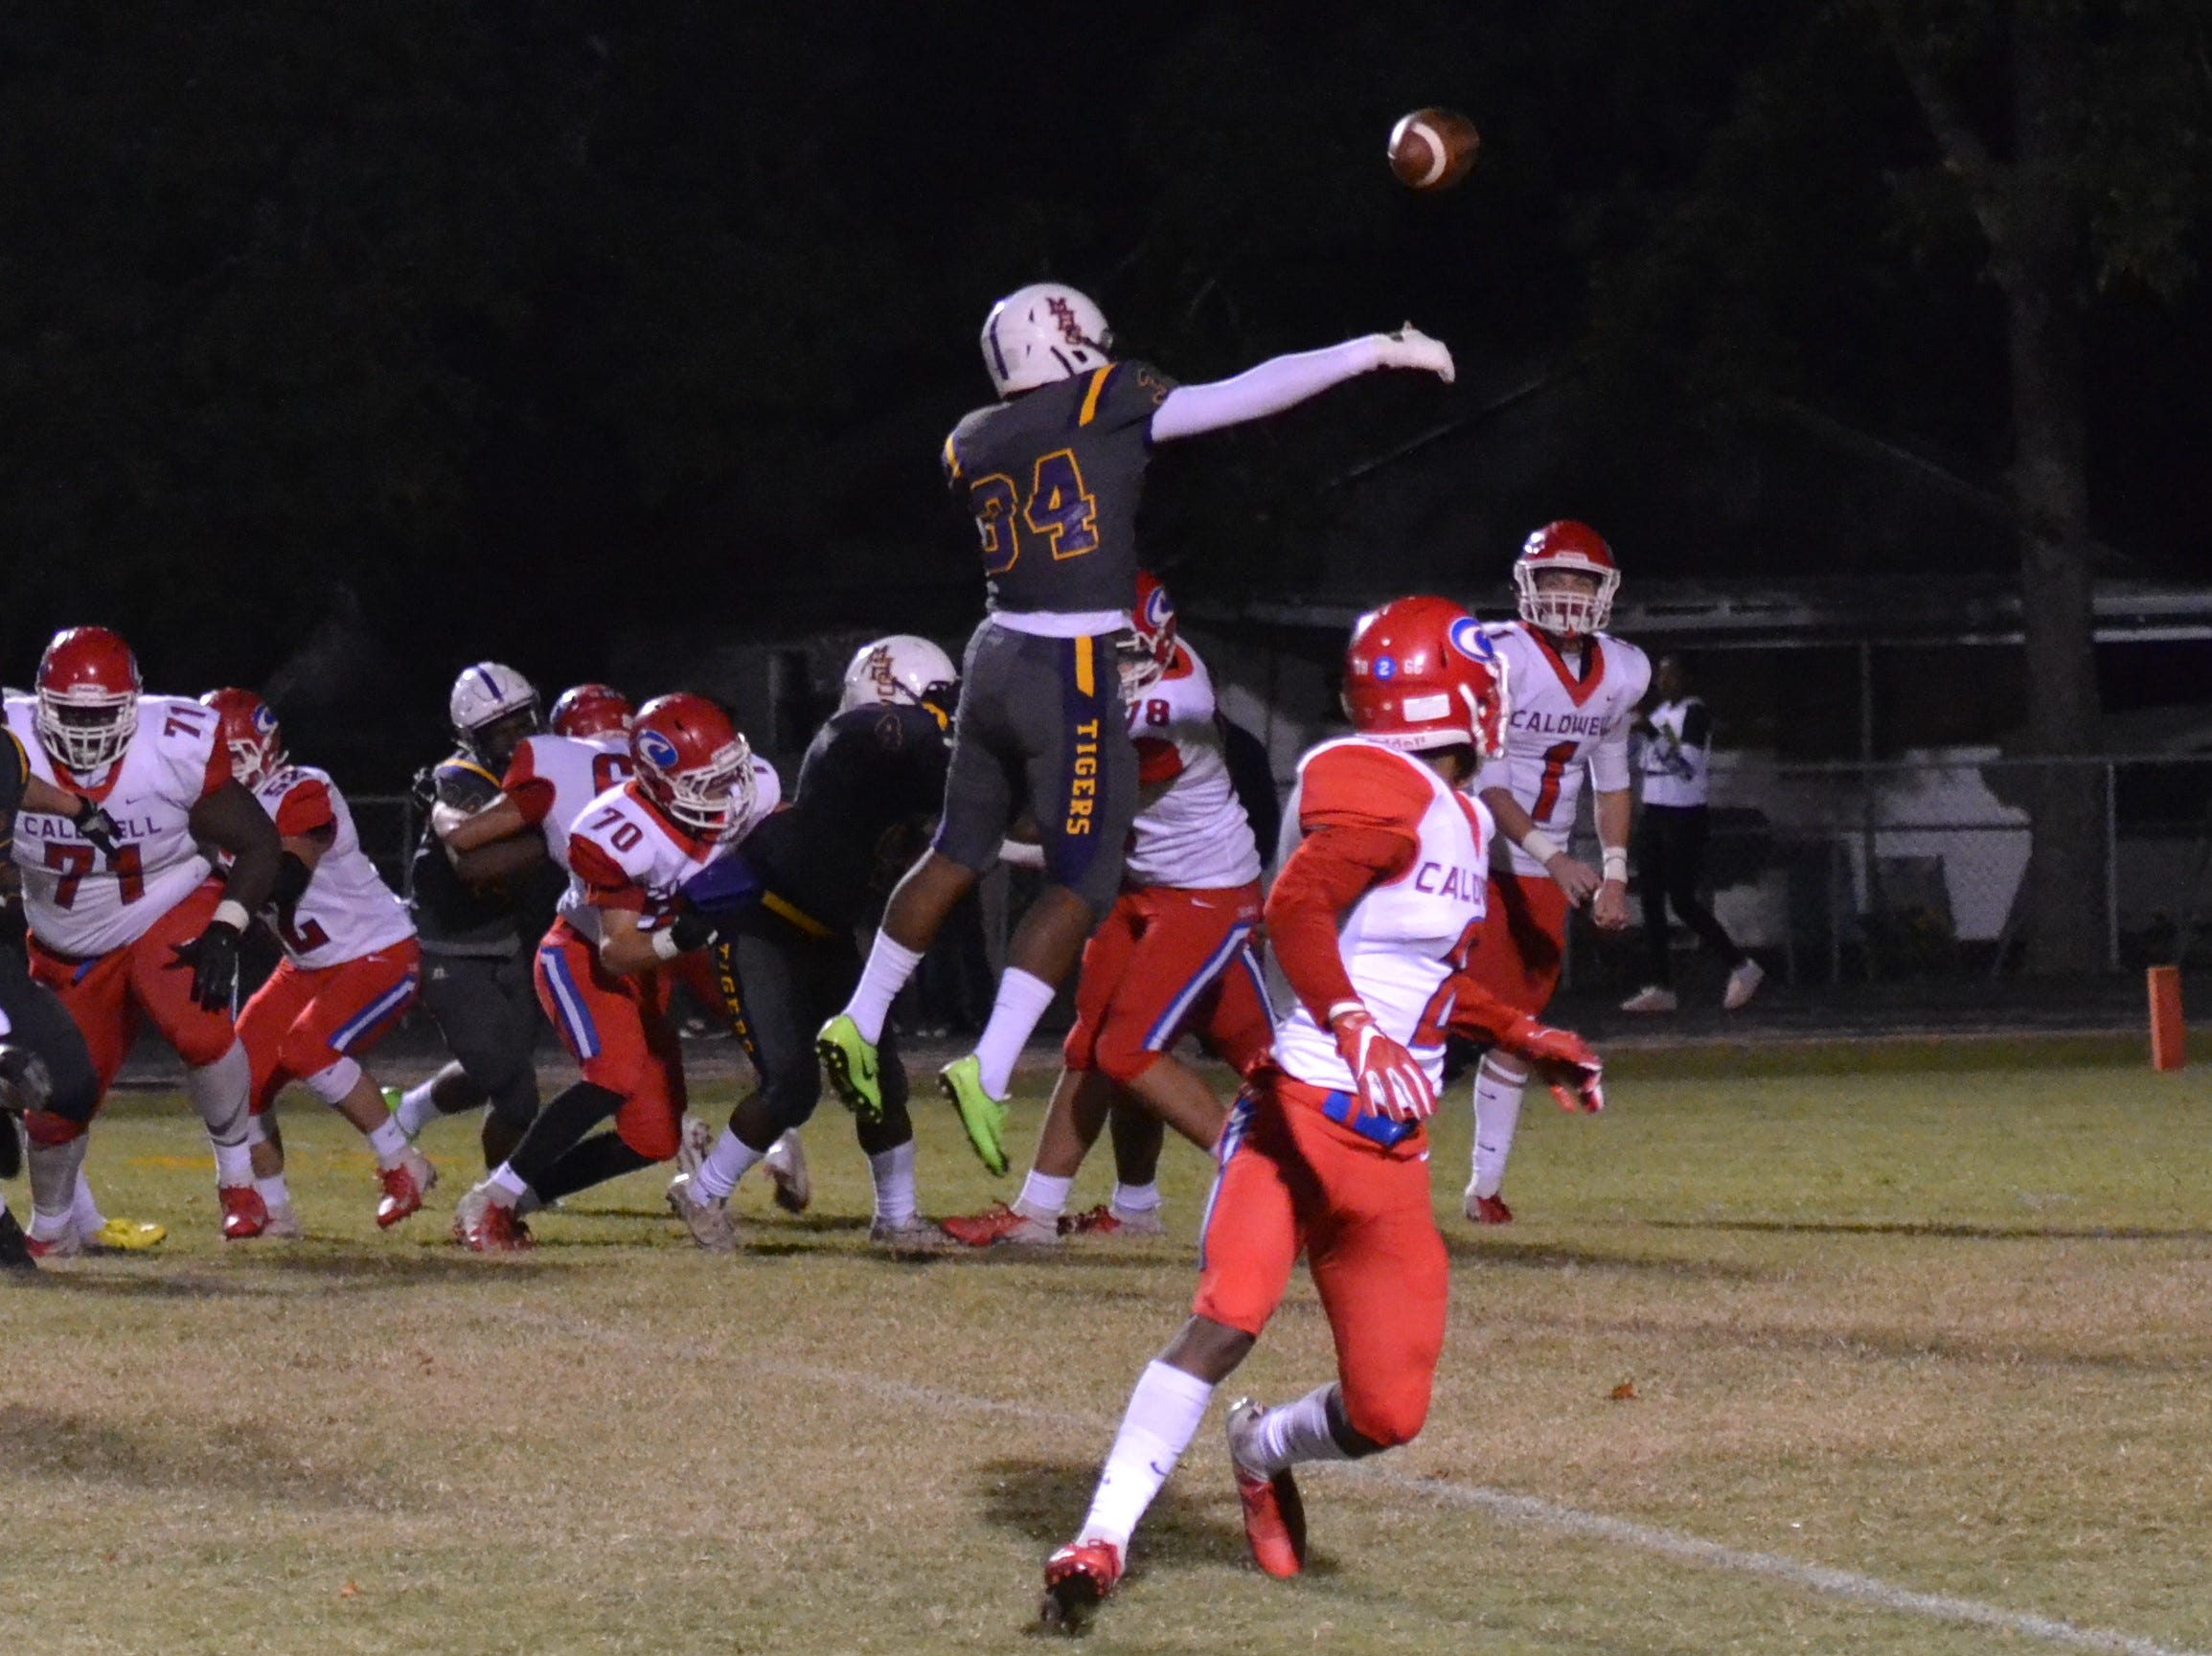 Tigers defender Chris Simon (34) leaps to try to deflect a pass by Caldwell quarterback Jaron Townsend (1). Marksville and Caldwell met in the regular season finale Friday night with Caldwell edging Marksville 13-8.